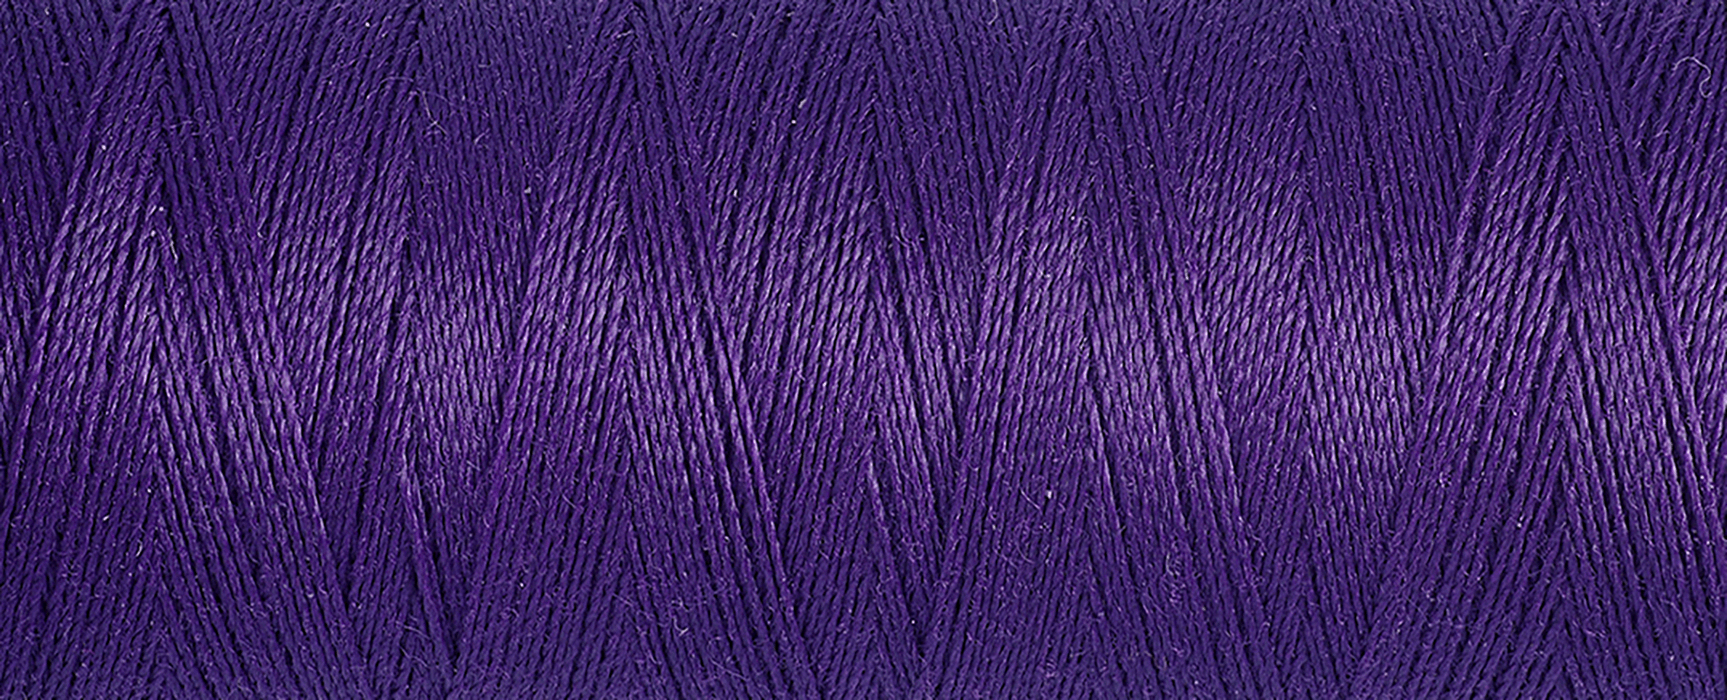 Gutermann 100% Recycled Sew-All Polyester Thread - 373 - The Village Haberdashery